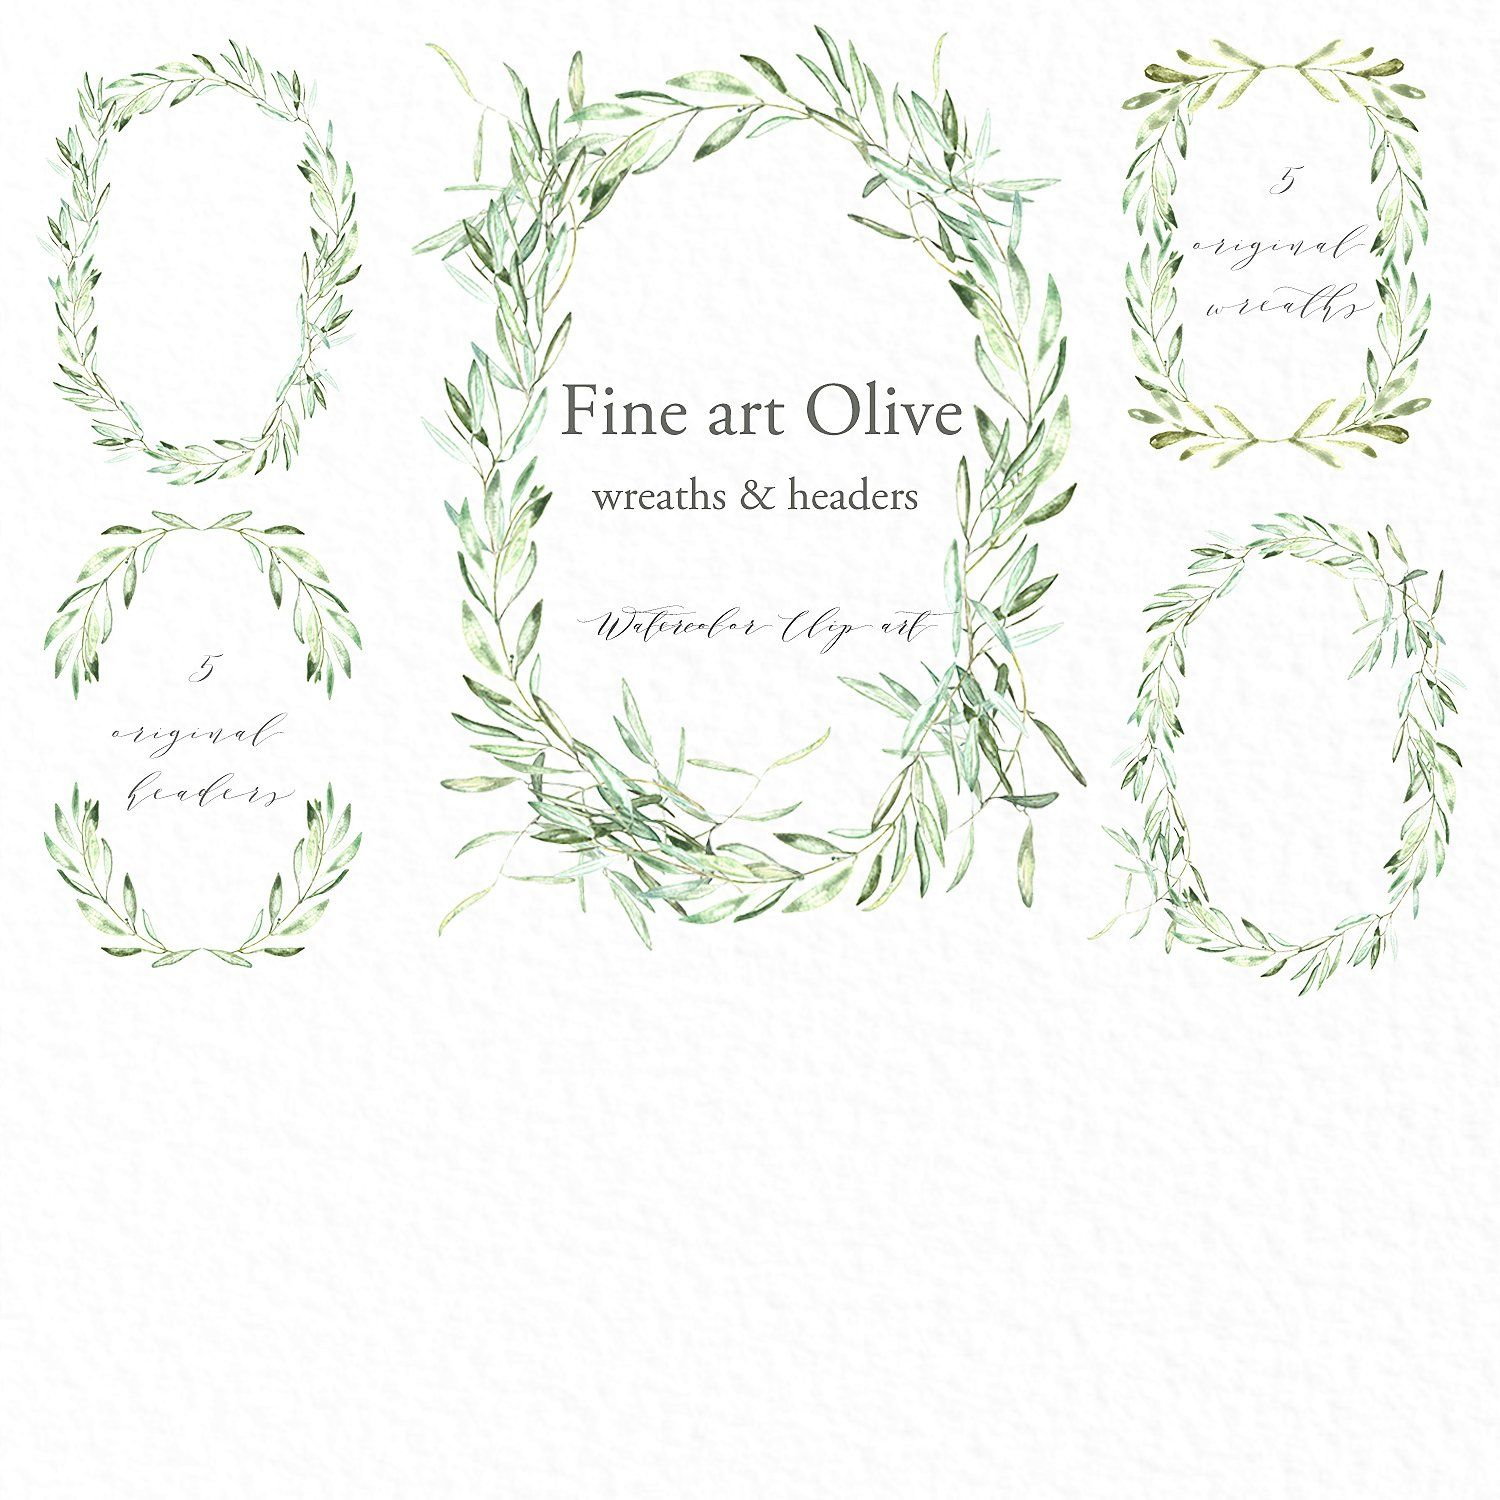 Olive oval wreaths & headers clipart by LABFcreations on.